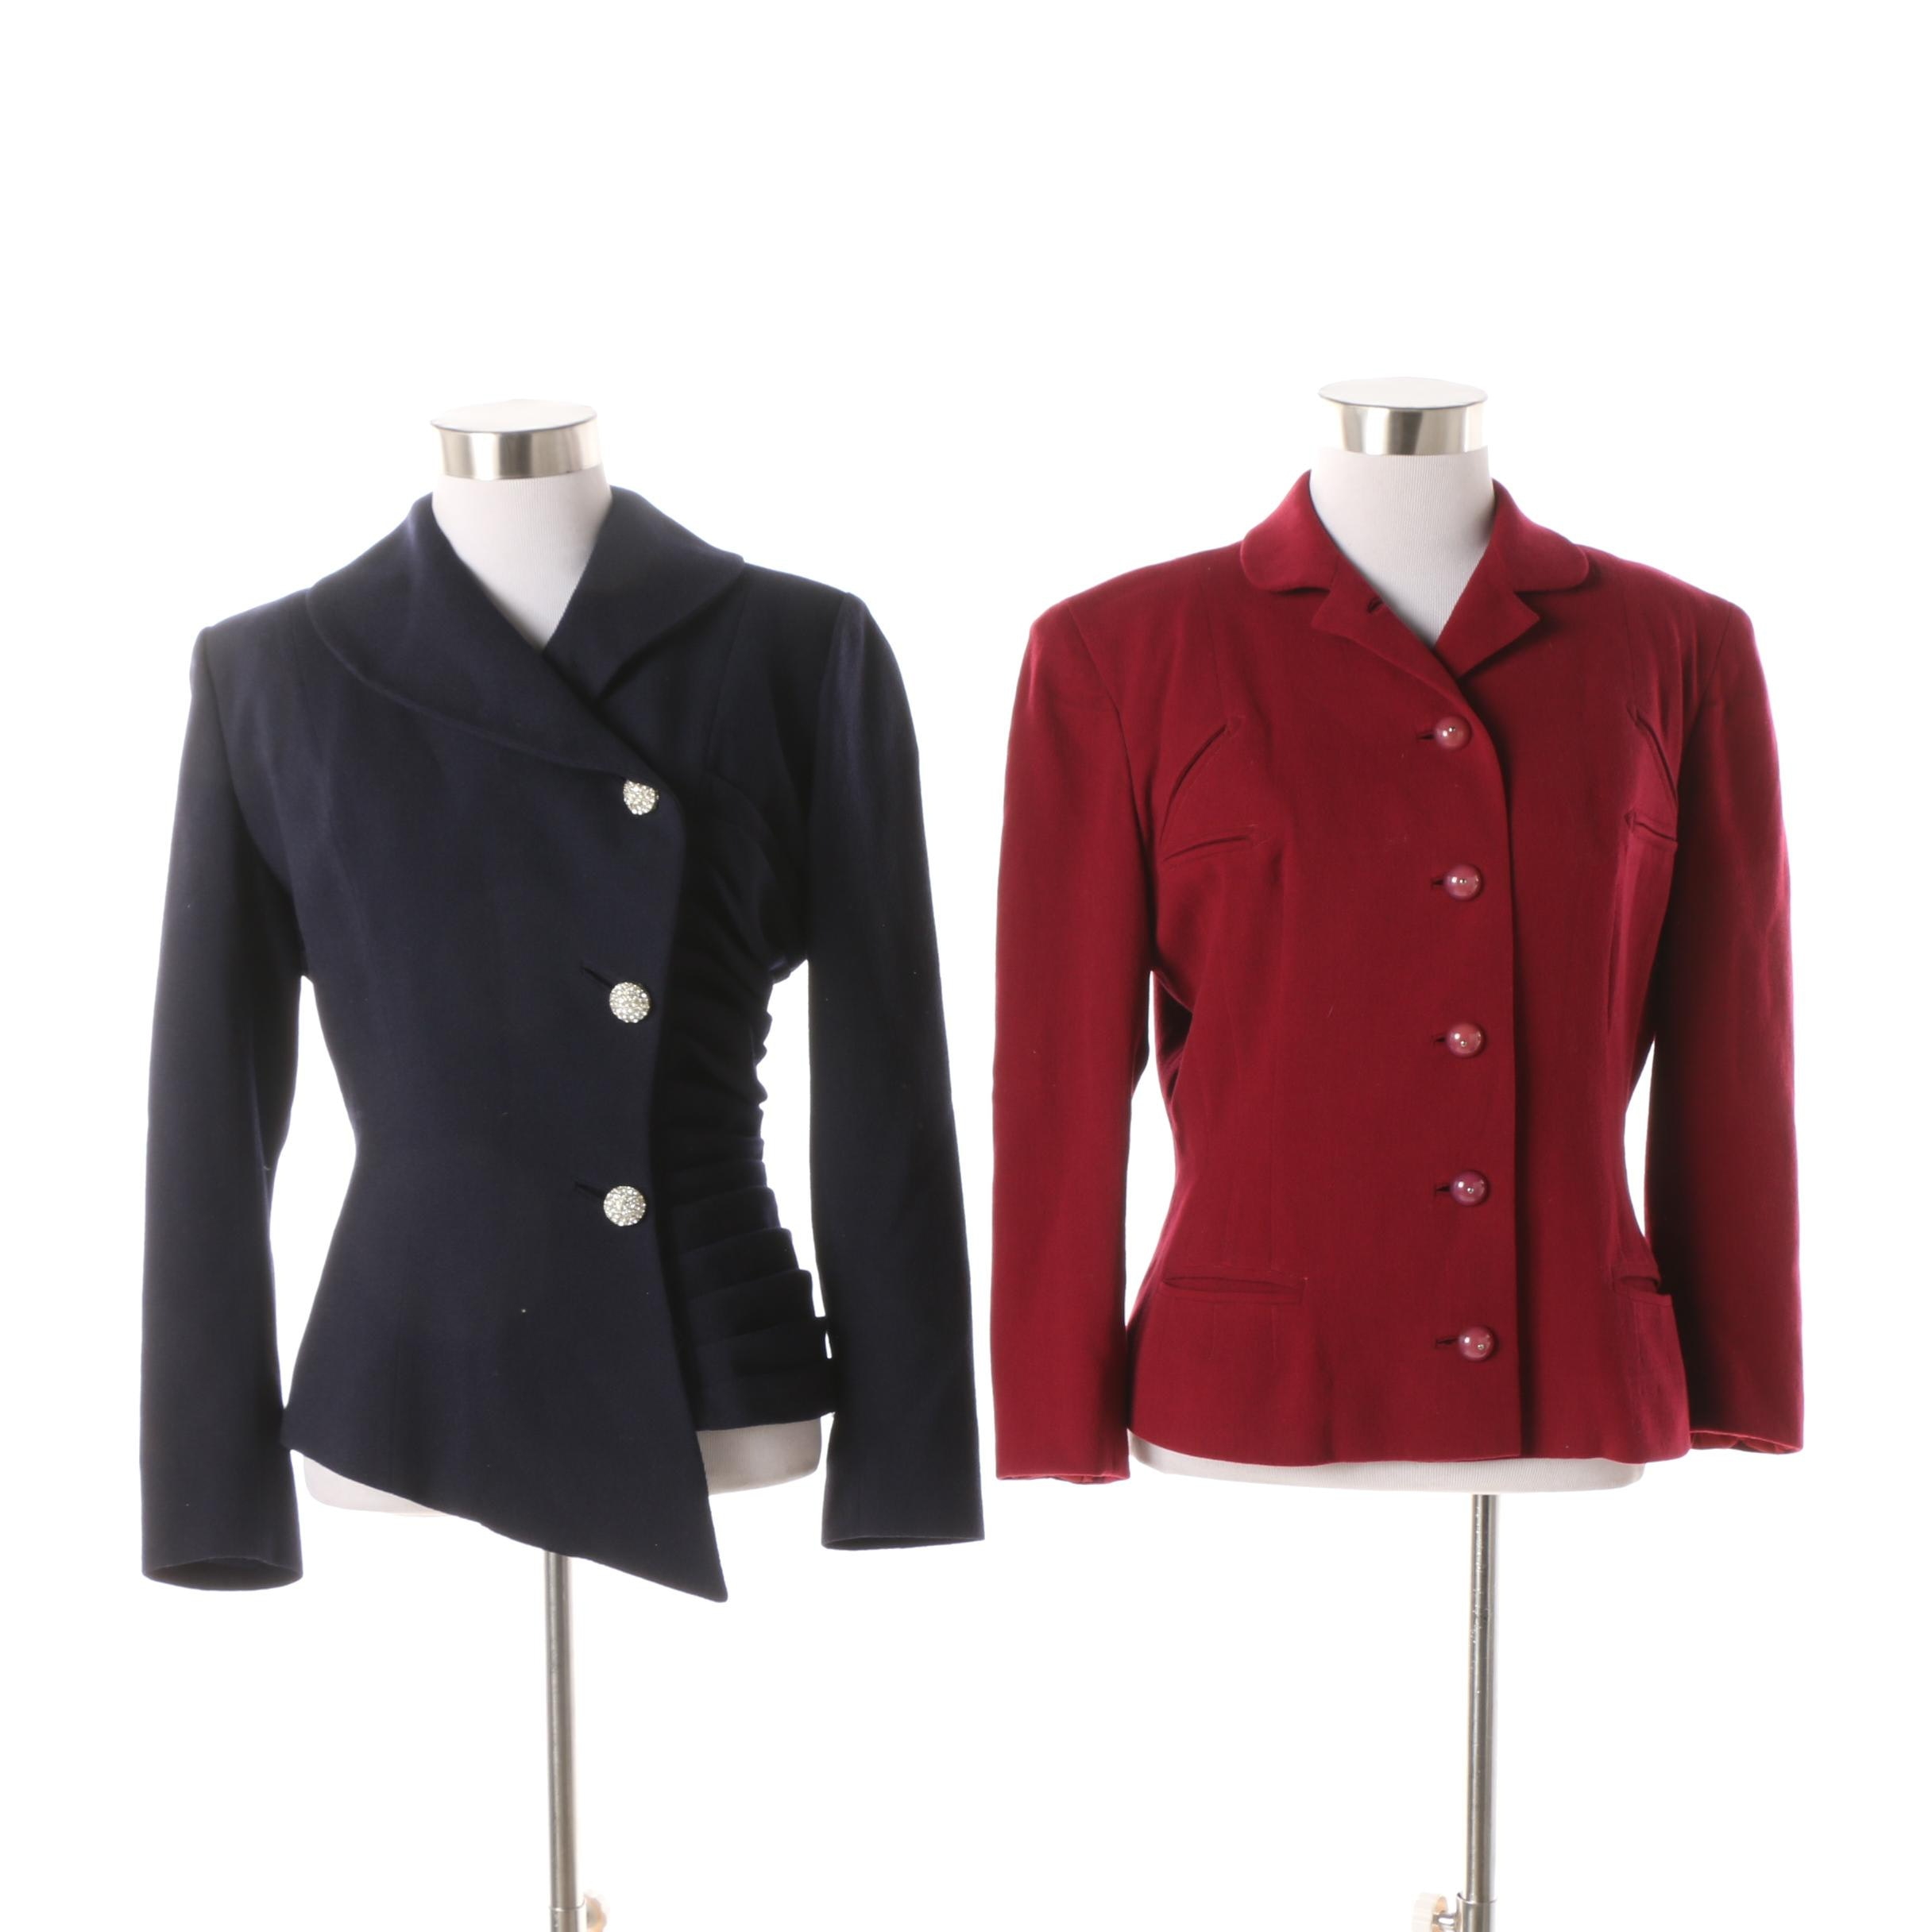 Women's 1960s Vintage Lilli Ann and I Magnin & Co. Jackets